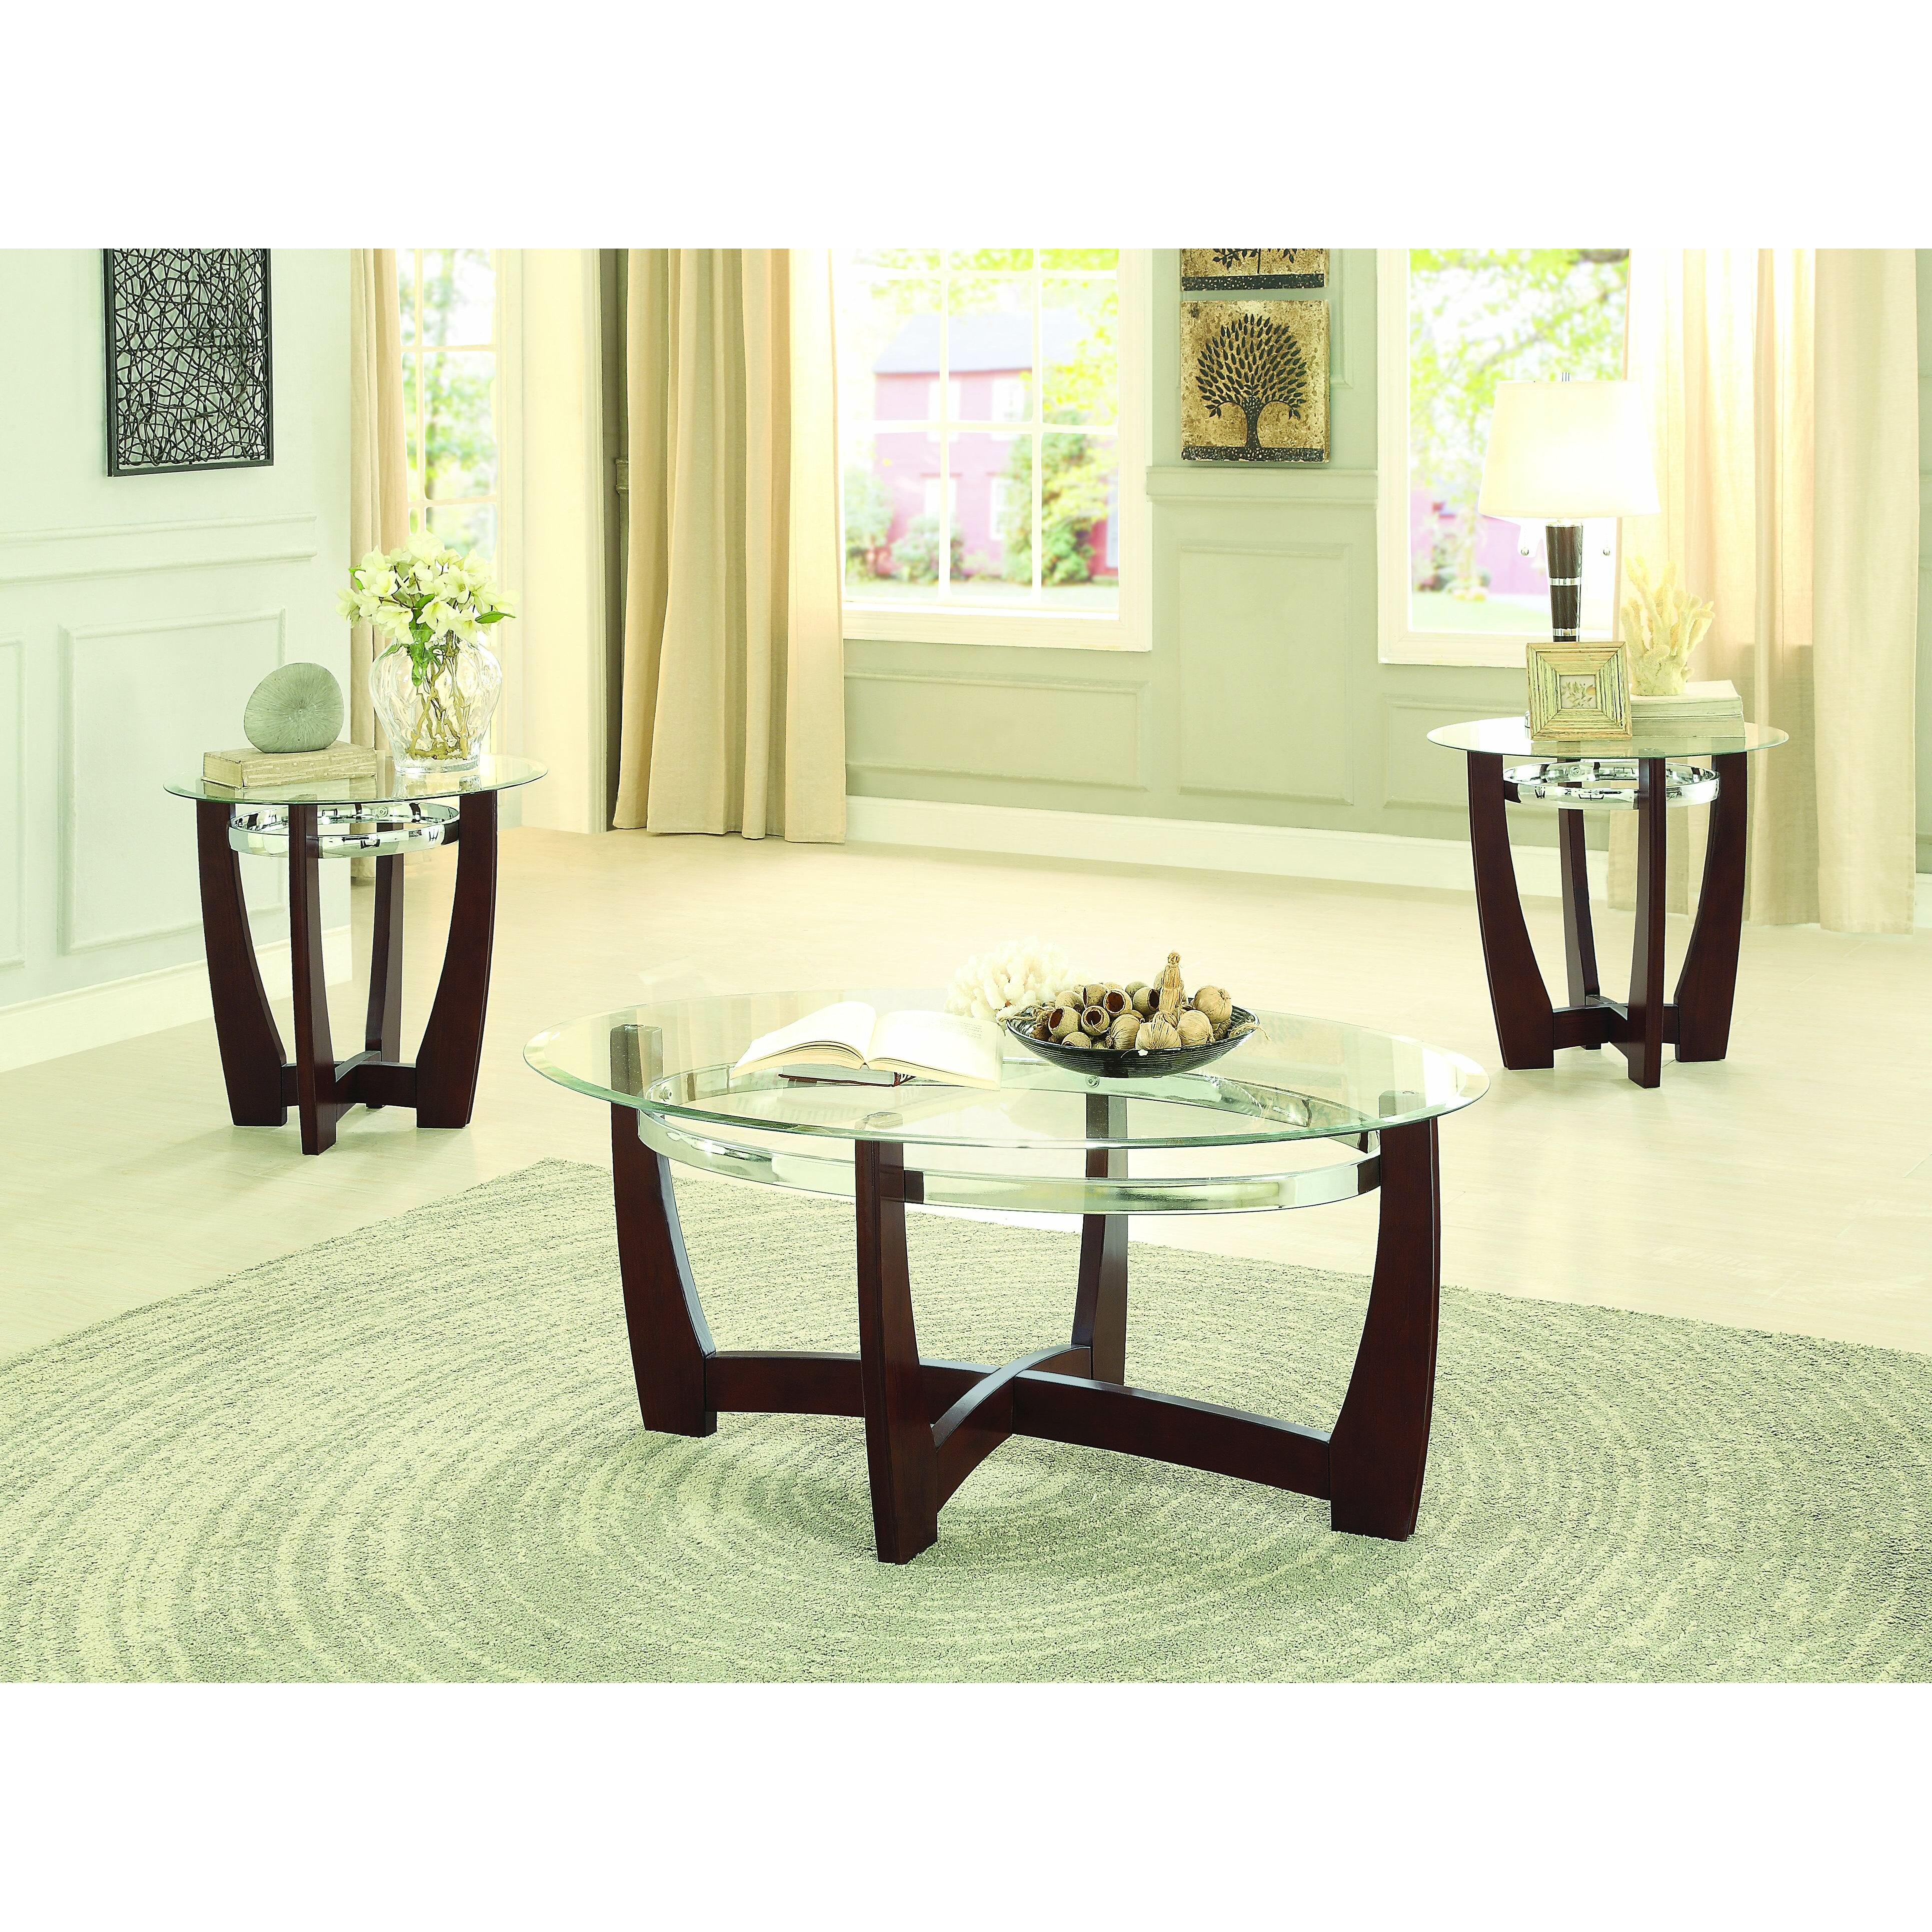 Veropeso 3 Piece Coffee Table Set: Latitude Run Catalina 3 Piece Coffee Table Set & Reviews